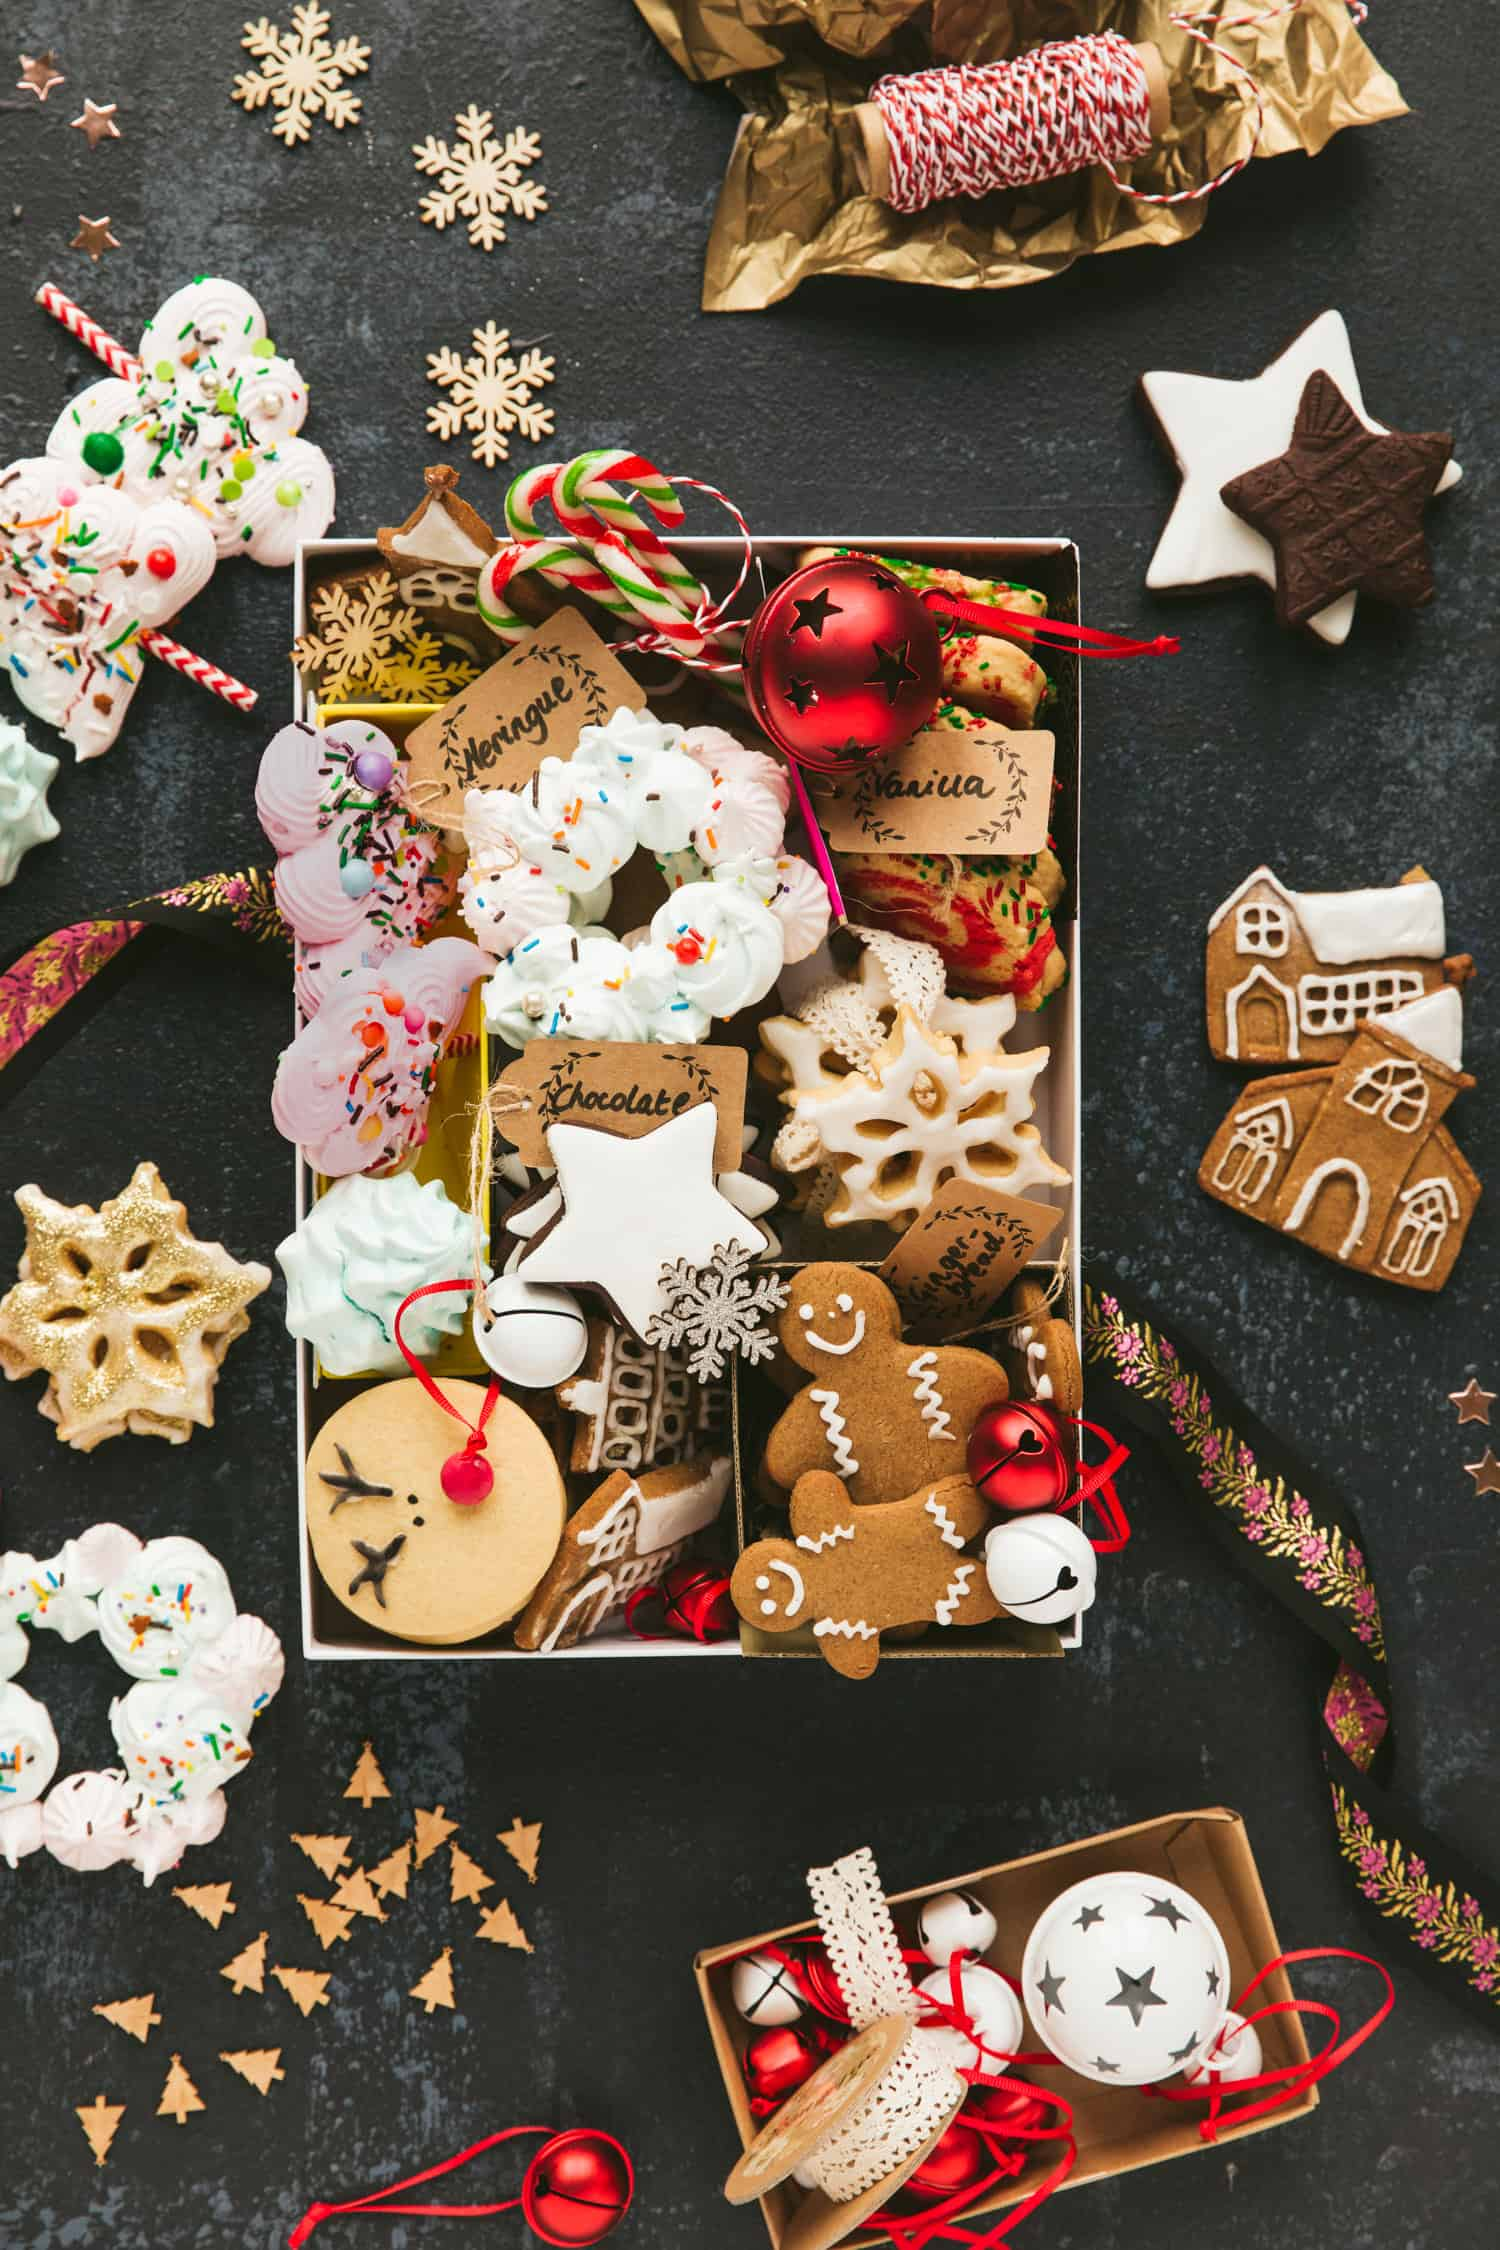 A box containing a variety of Christmas cookies: gingerbread, vanilla, chocolate and pinwheel biscuits.